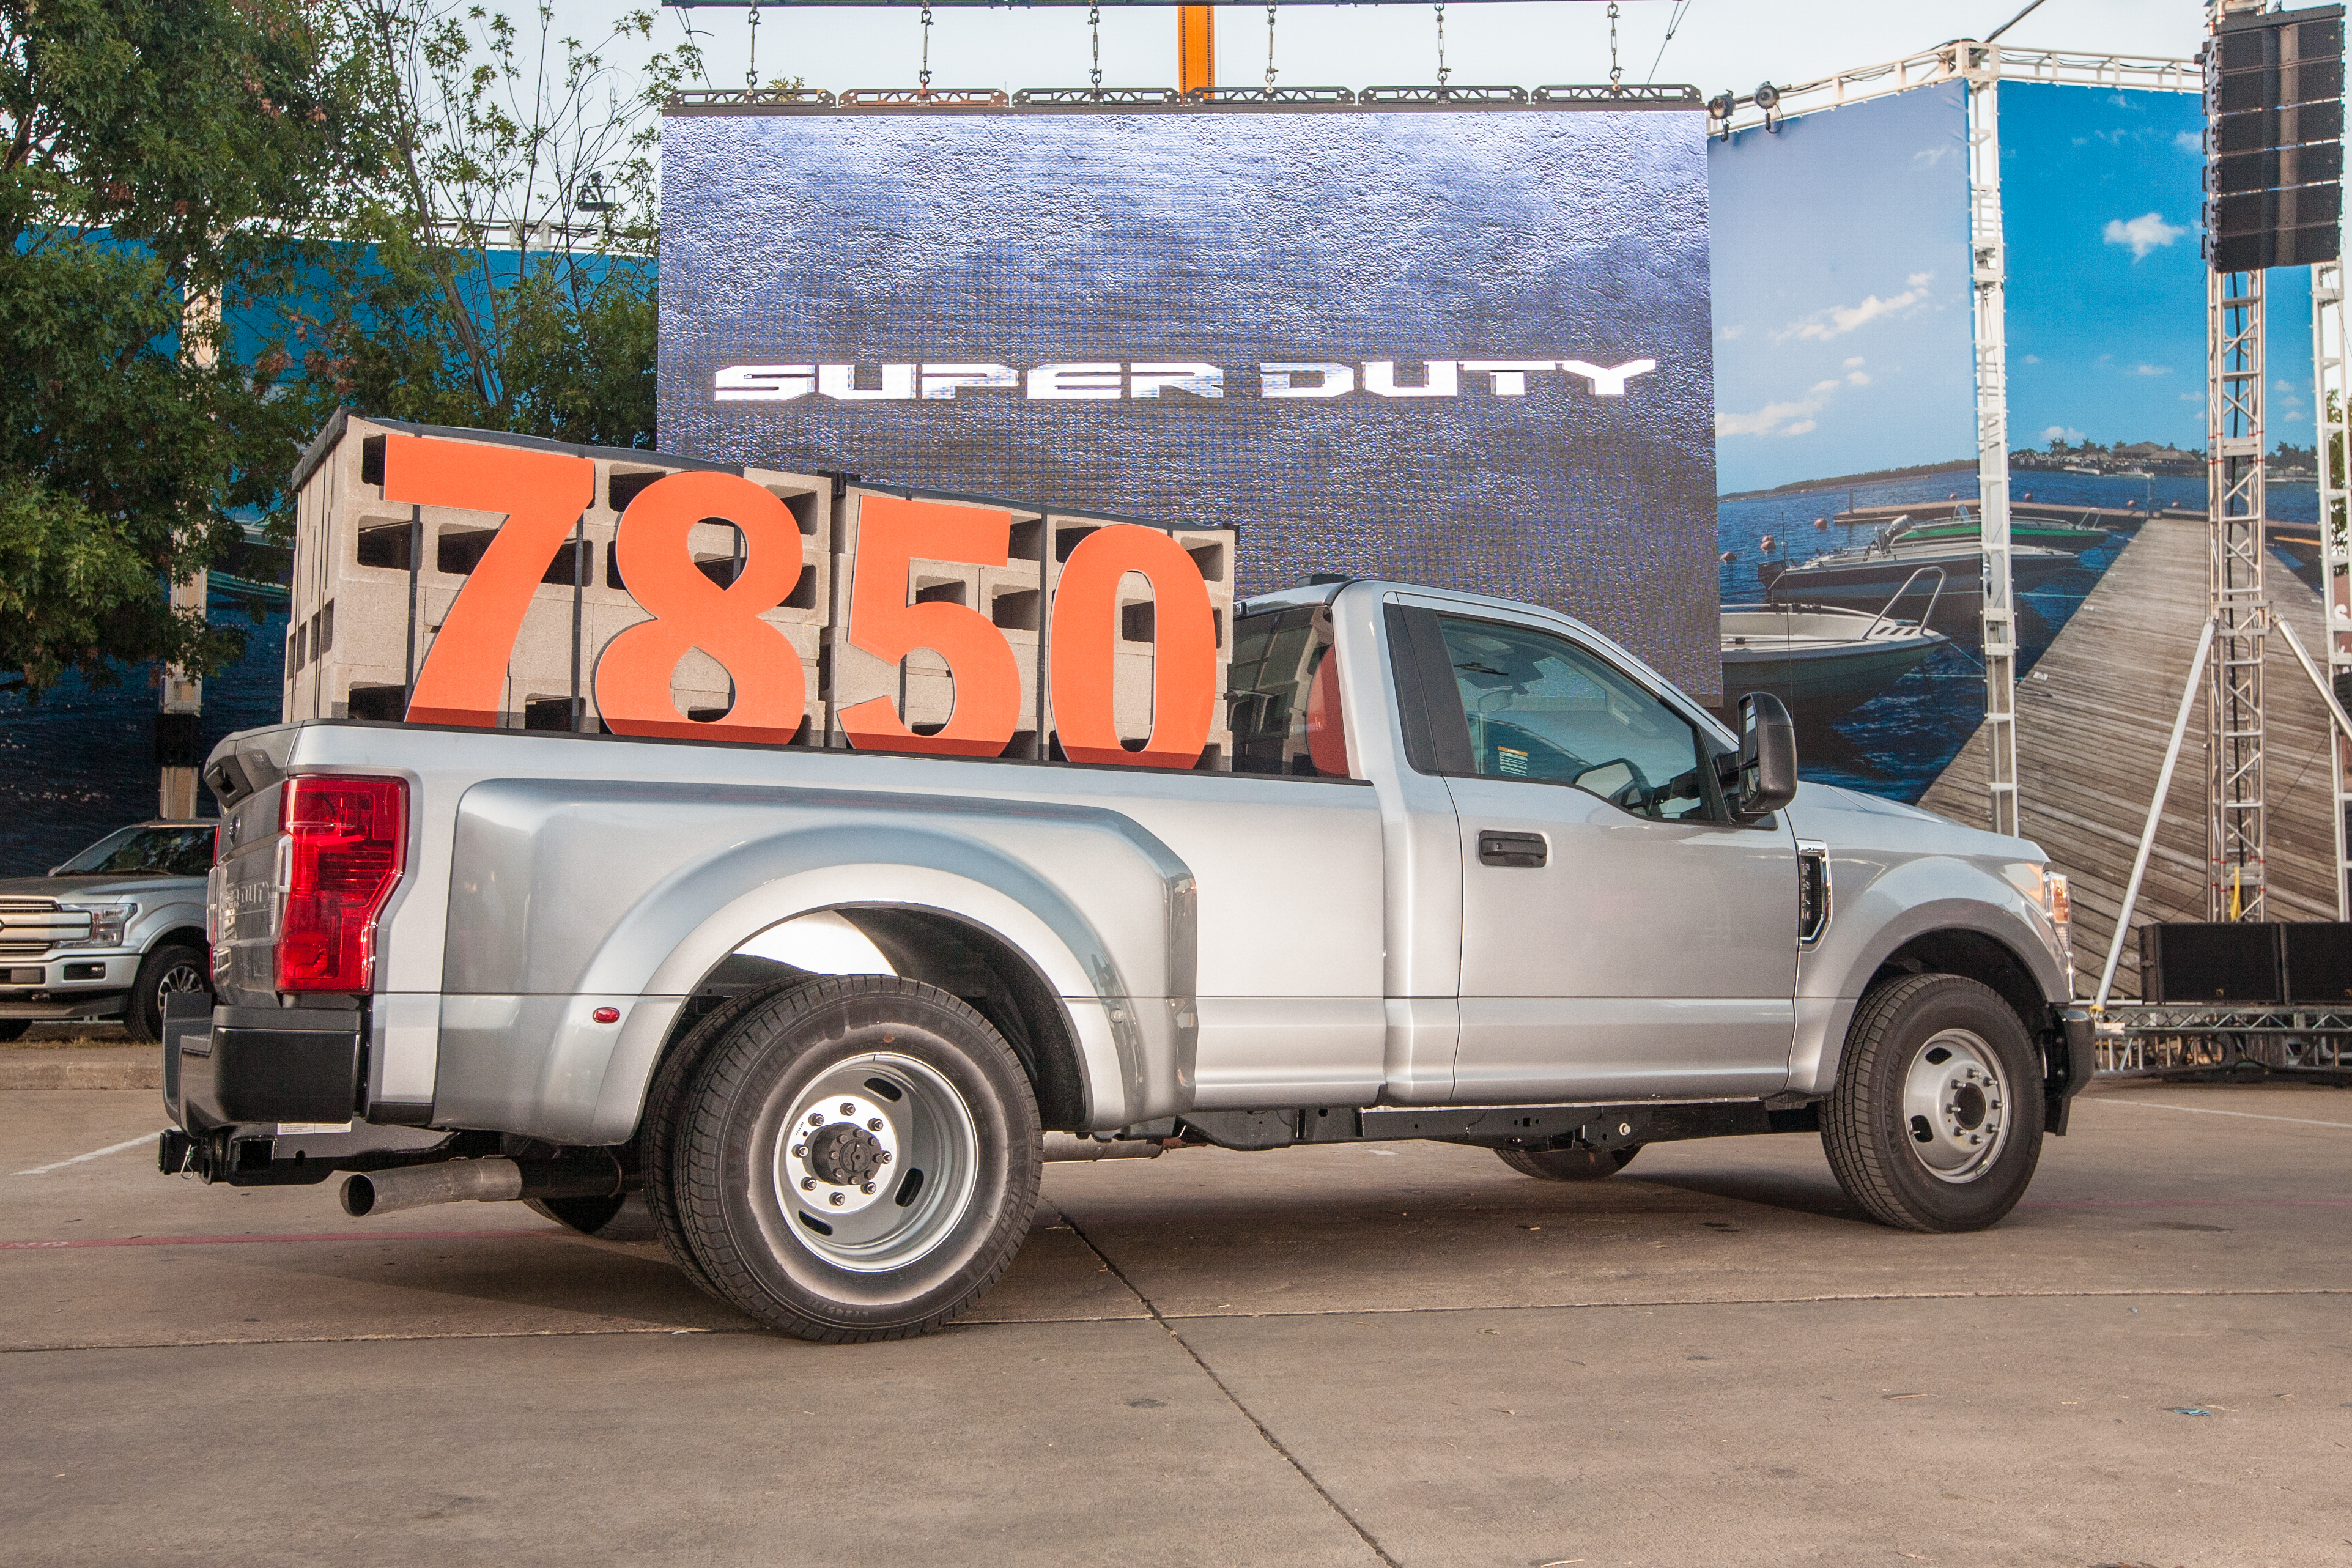 2020 Ford Super Duty Claims Six Best In Class Titles